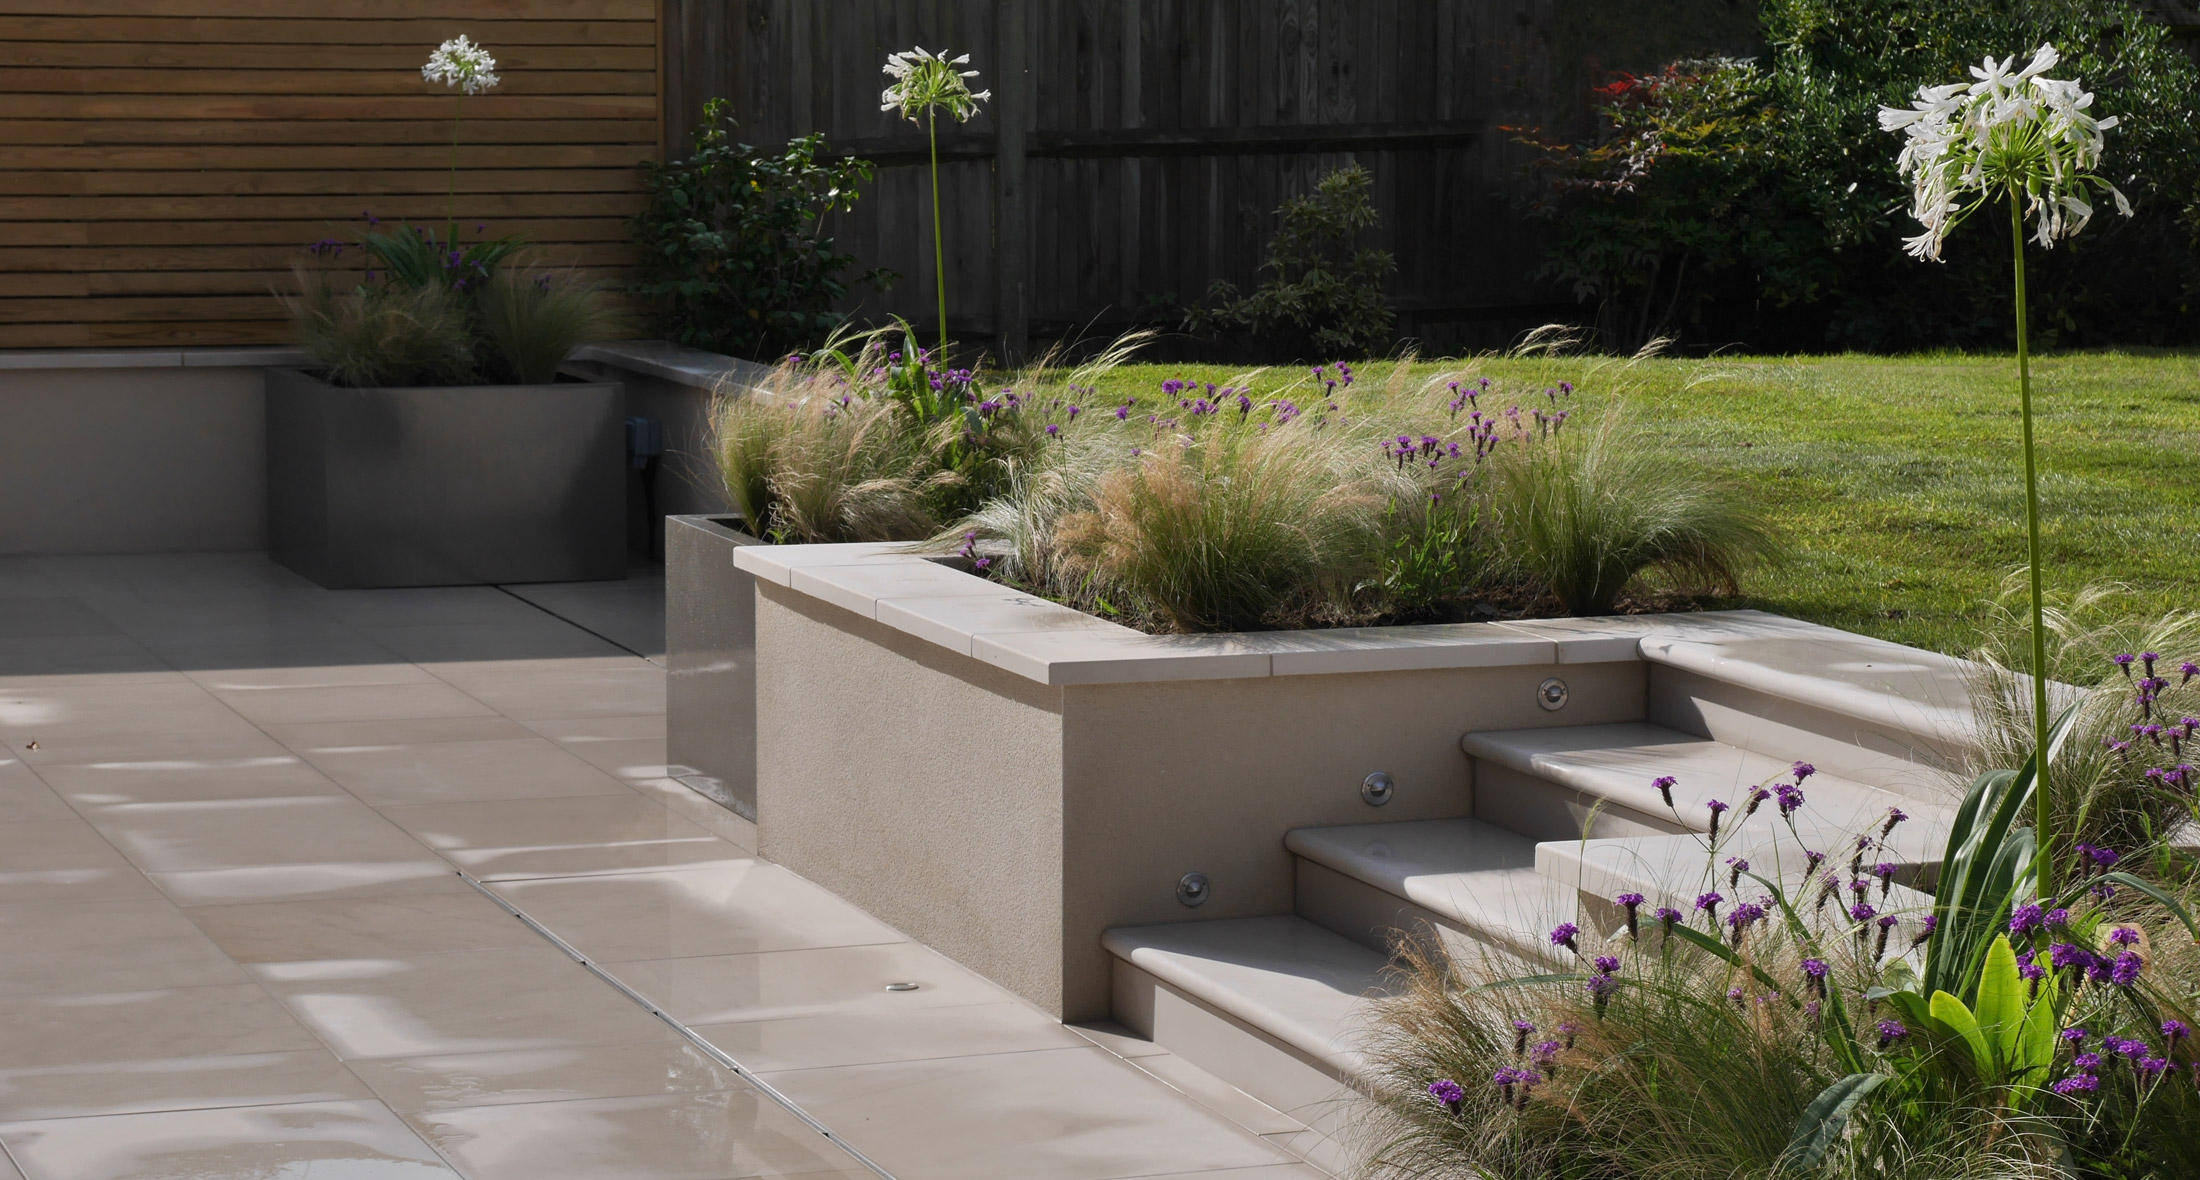 a slate grey garden design & landscaping patio showing raised edging and containers